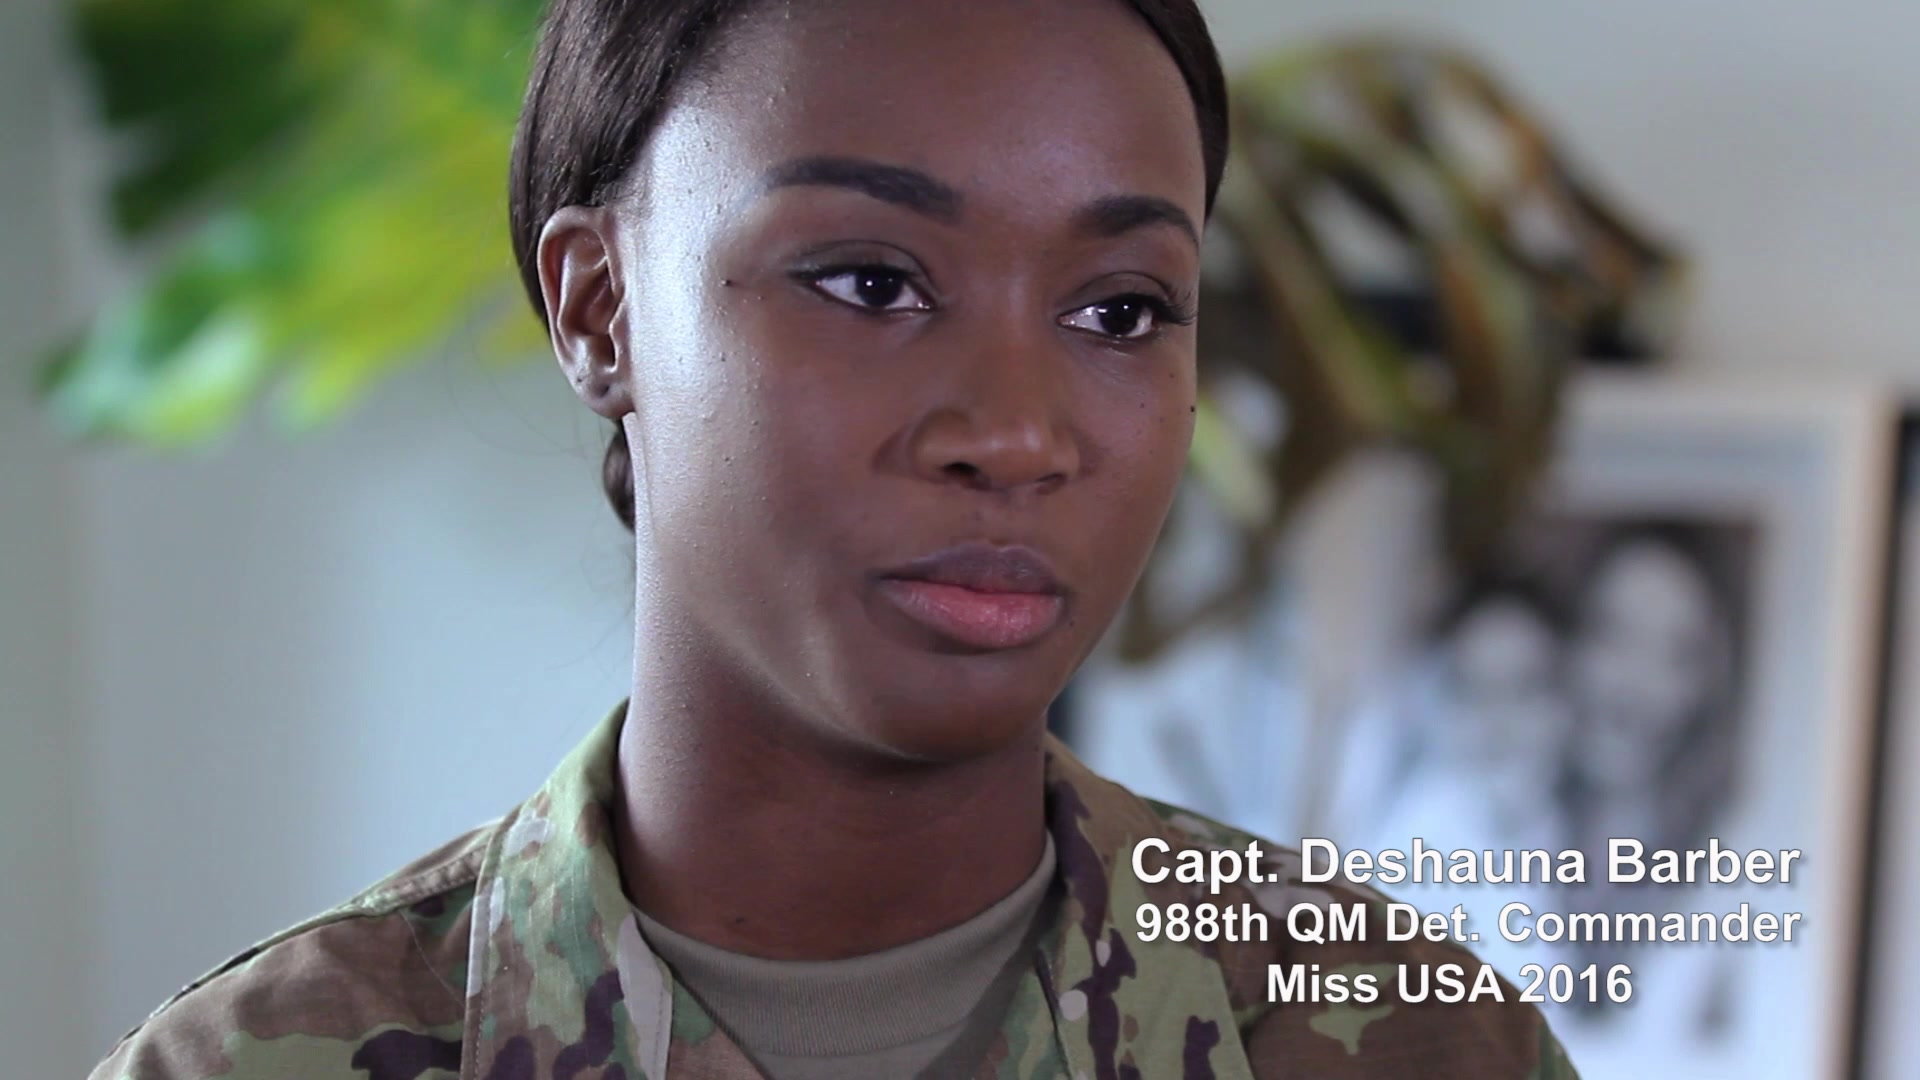 Part 1 of 4 on our series featuring Miss USA 2016, Capt. Deshauna Barber, Commander 988th Quartermaster Detachment. In this episode, CPT Barber talks about growing up in a military family, and choosing to join the service herself.